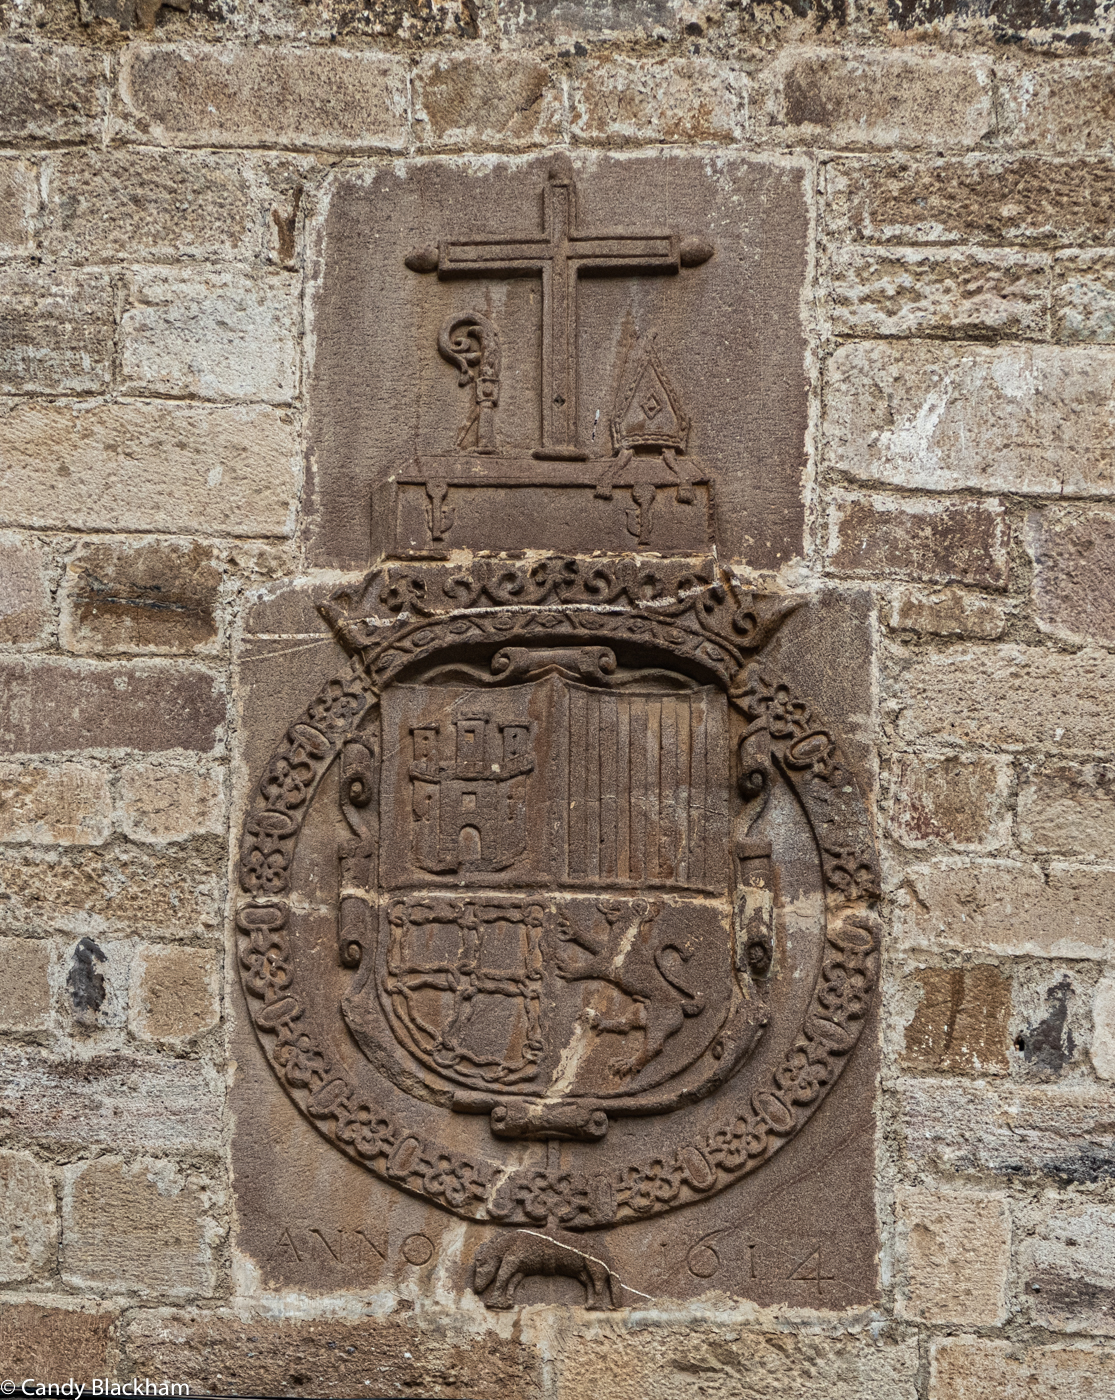 The Coat of Arms above the monastery door